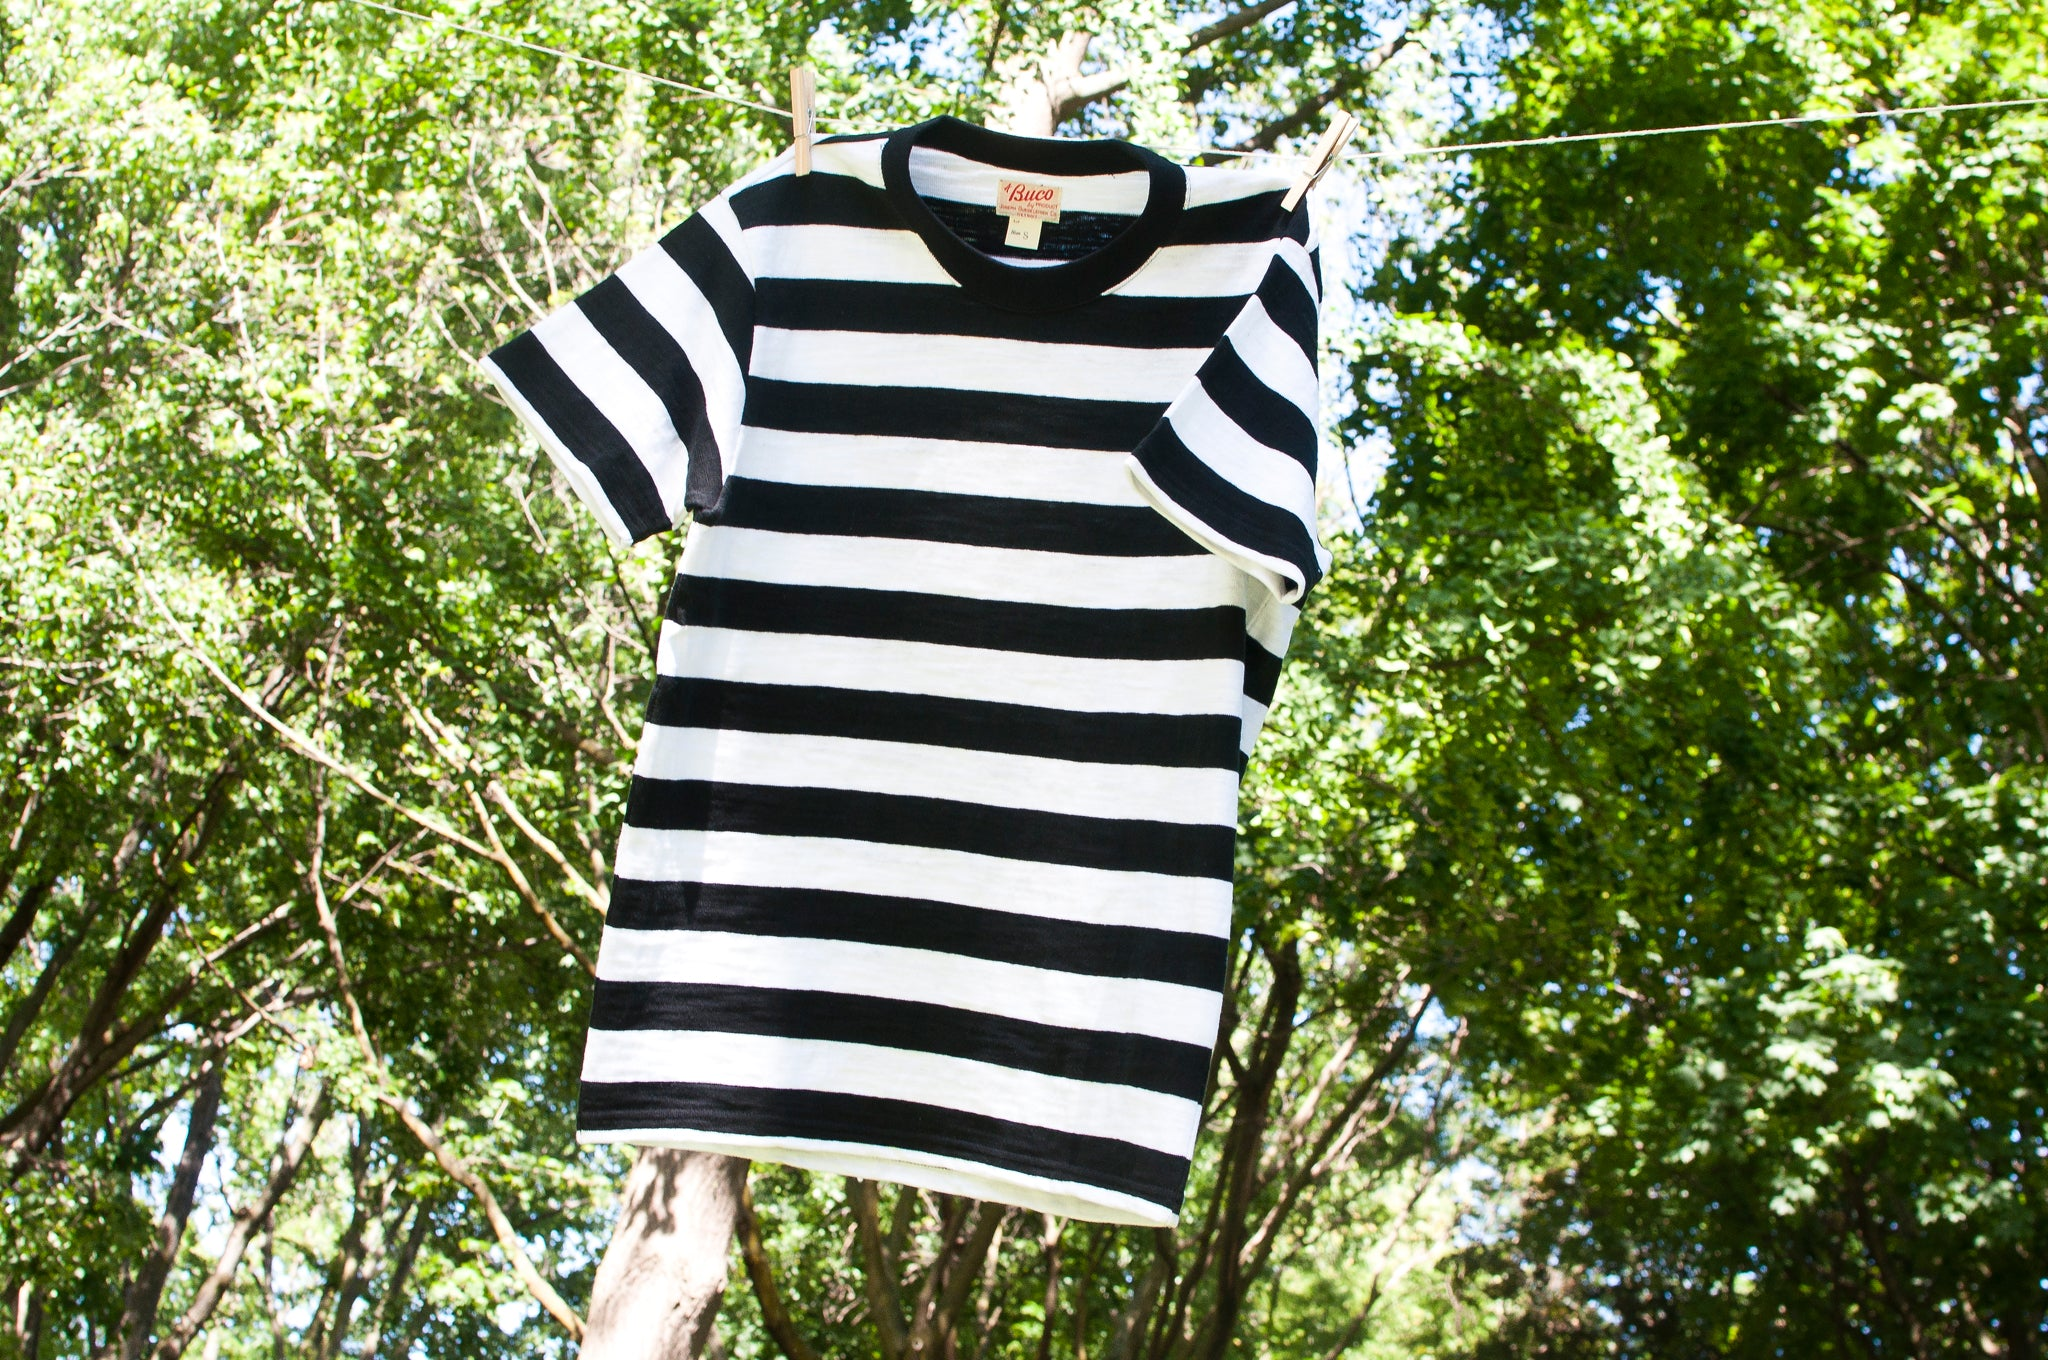 The Real McCoy's Buco Striped Tee Black/White at shoplostfound